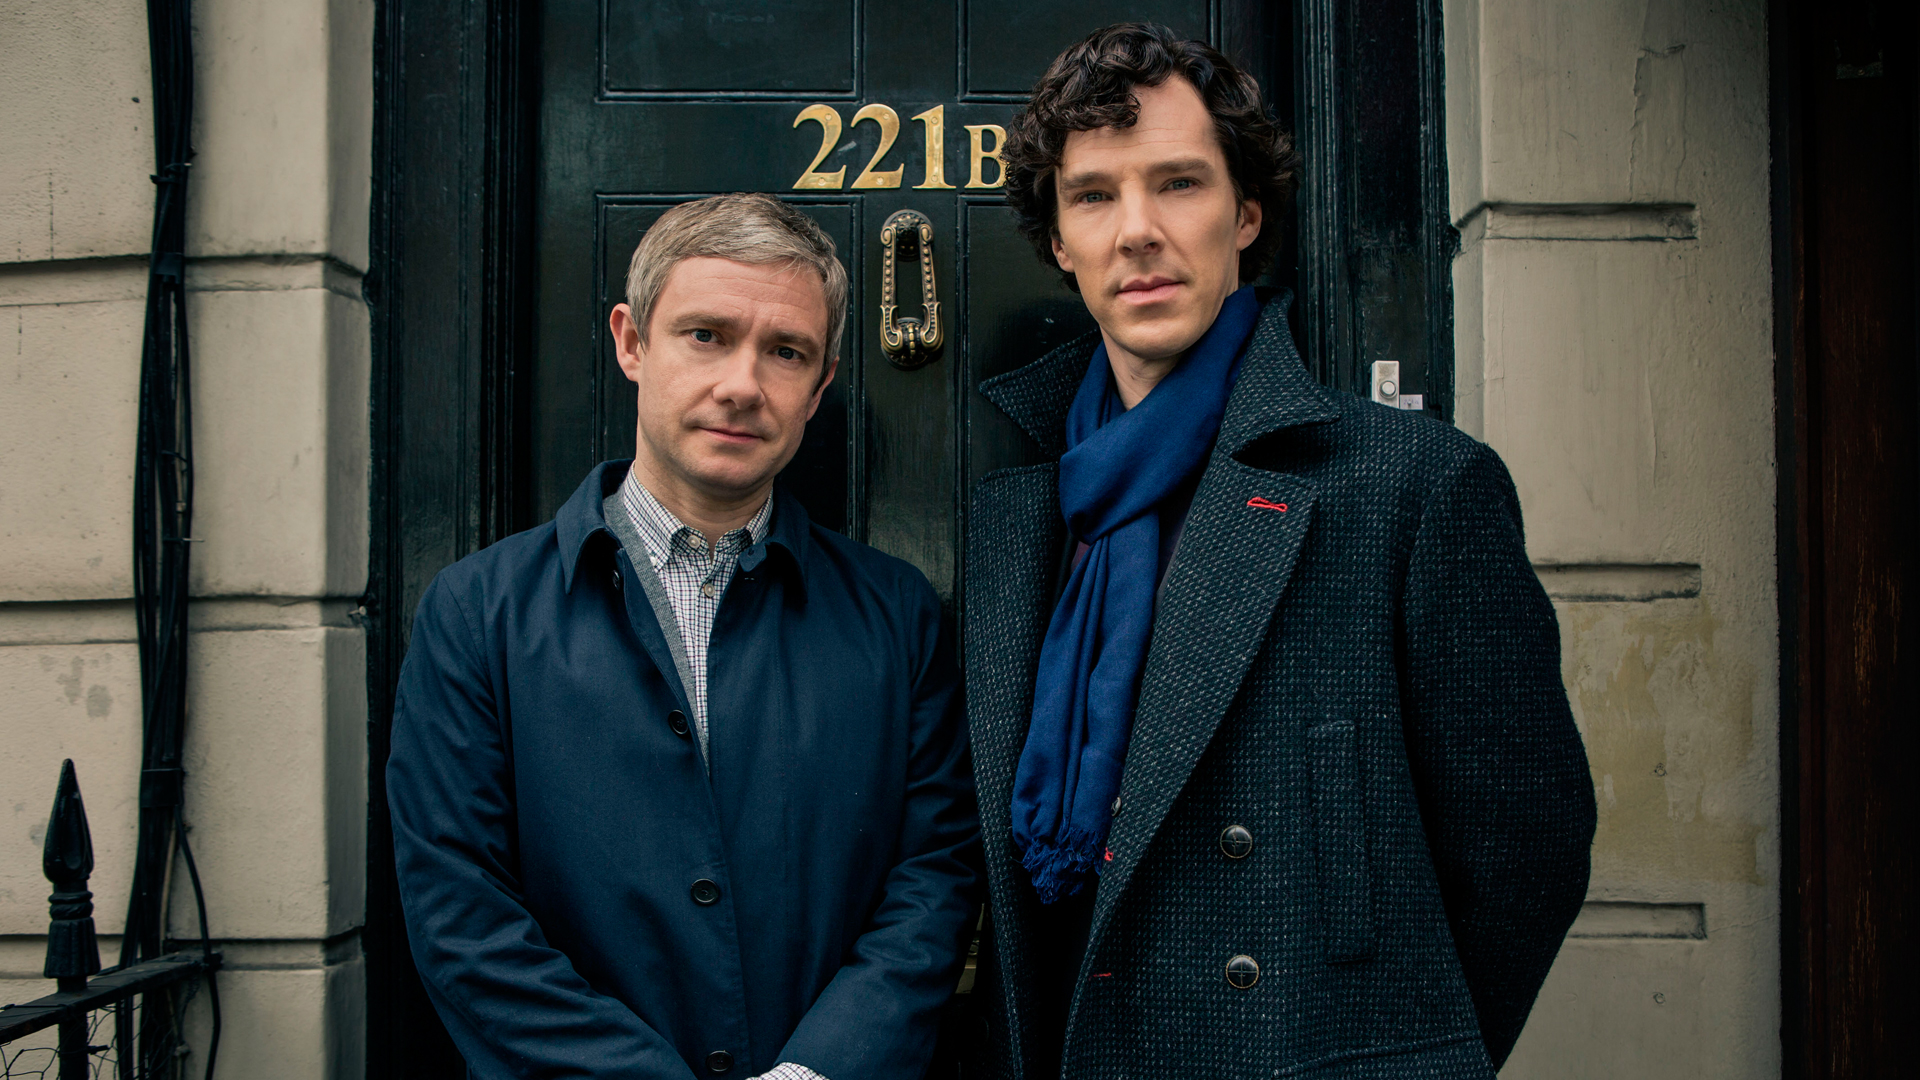 Sherlock Season 5 Renewal and Release Date Benedict Cumberbatch and Martin Freeman hints on Next Installment